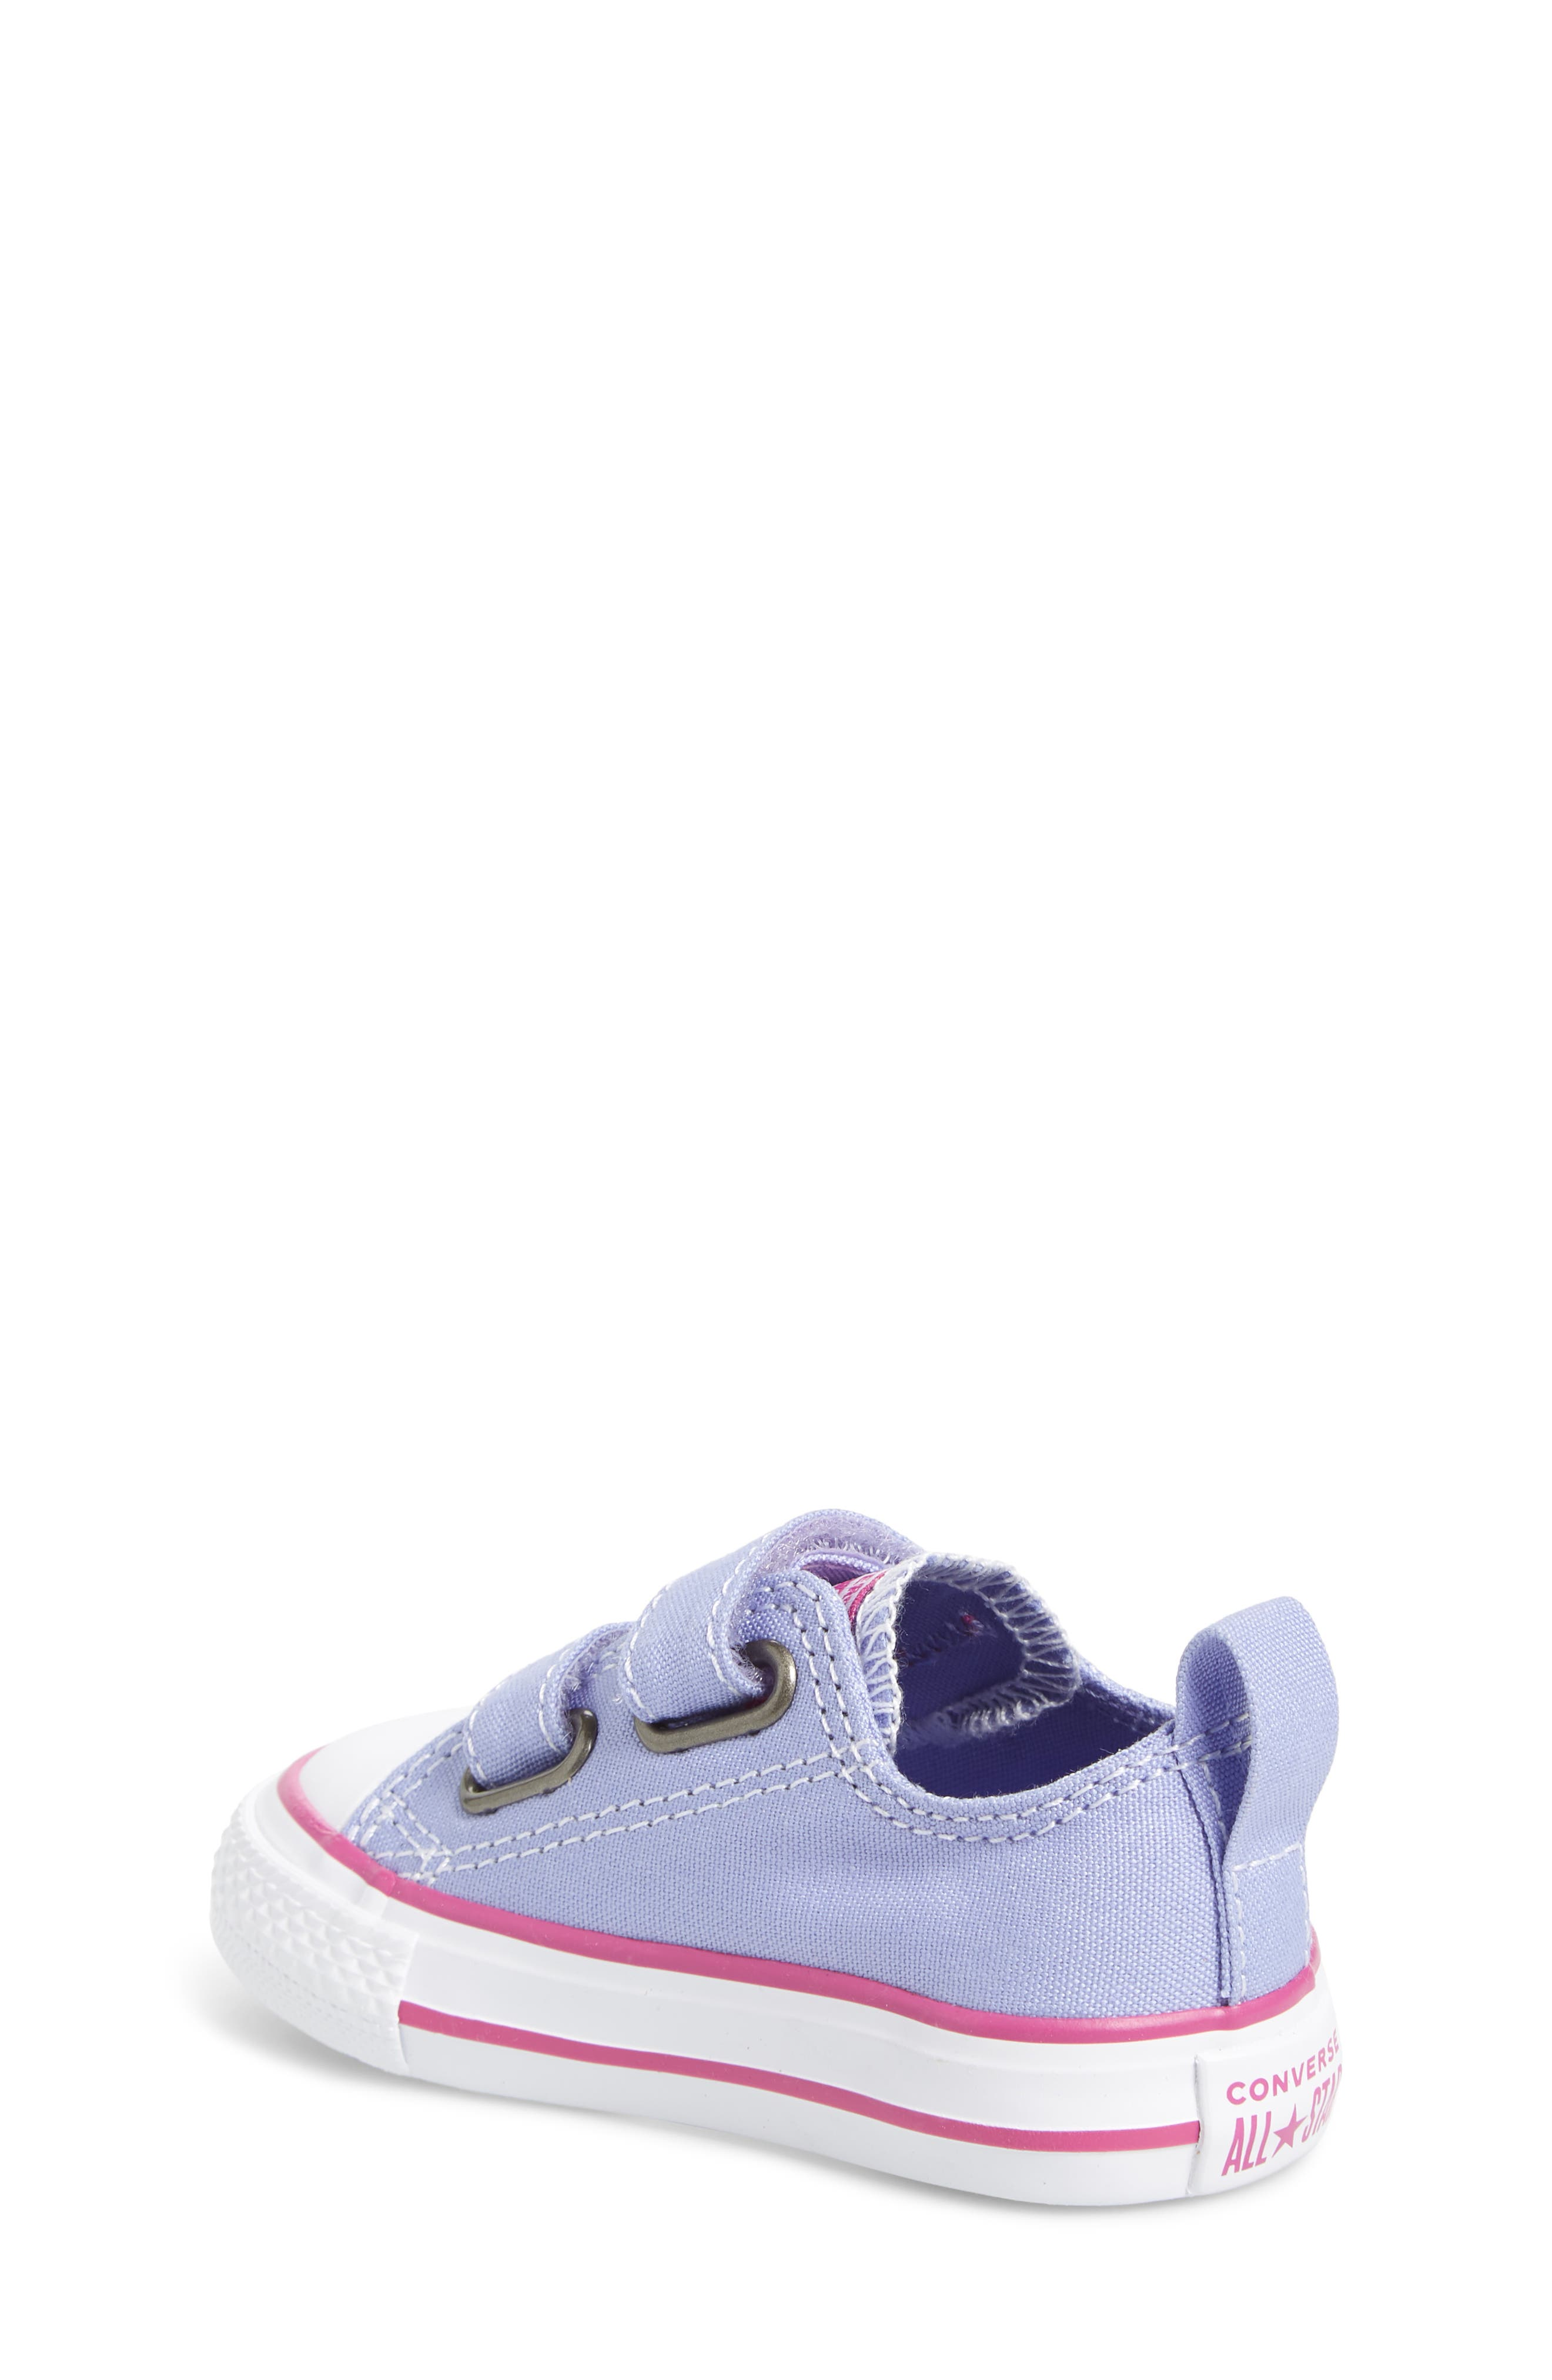 All Star<sup>®</sup> 2V Low Top Sneaker,                             Alternate thumbnail 2, color,                             Twilight Purple